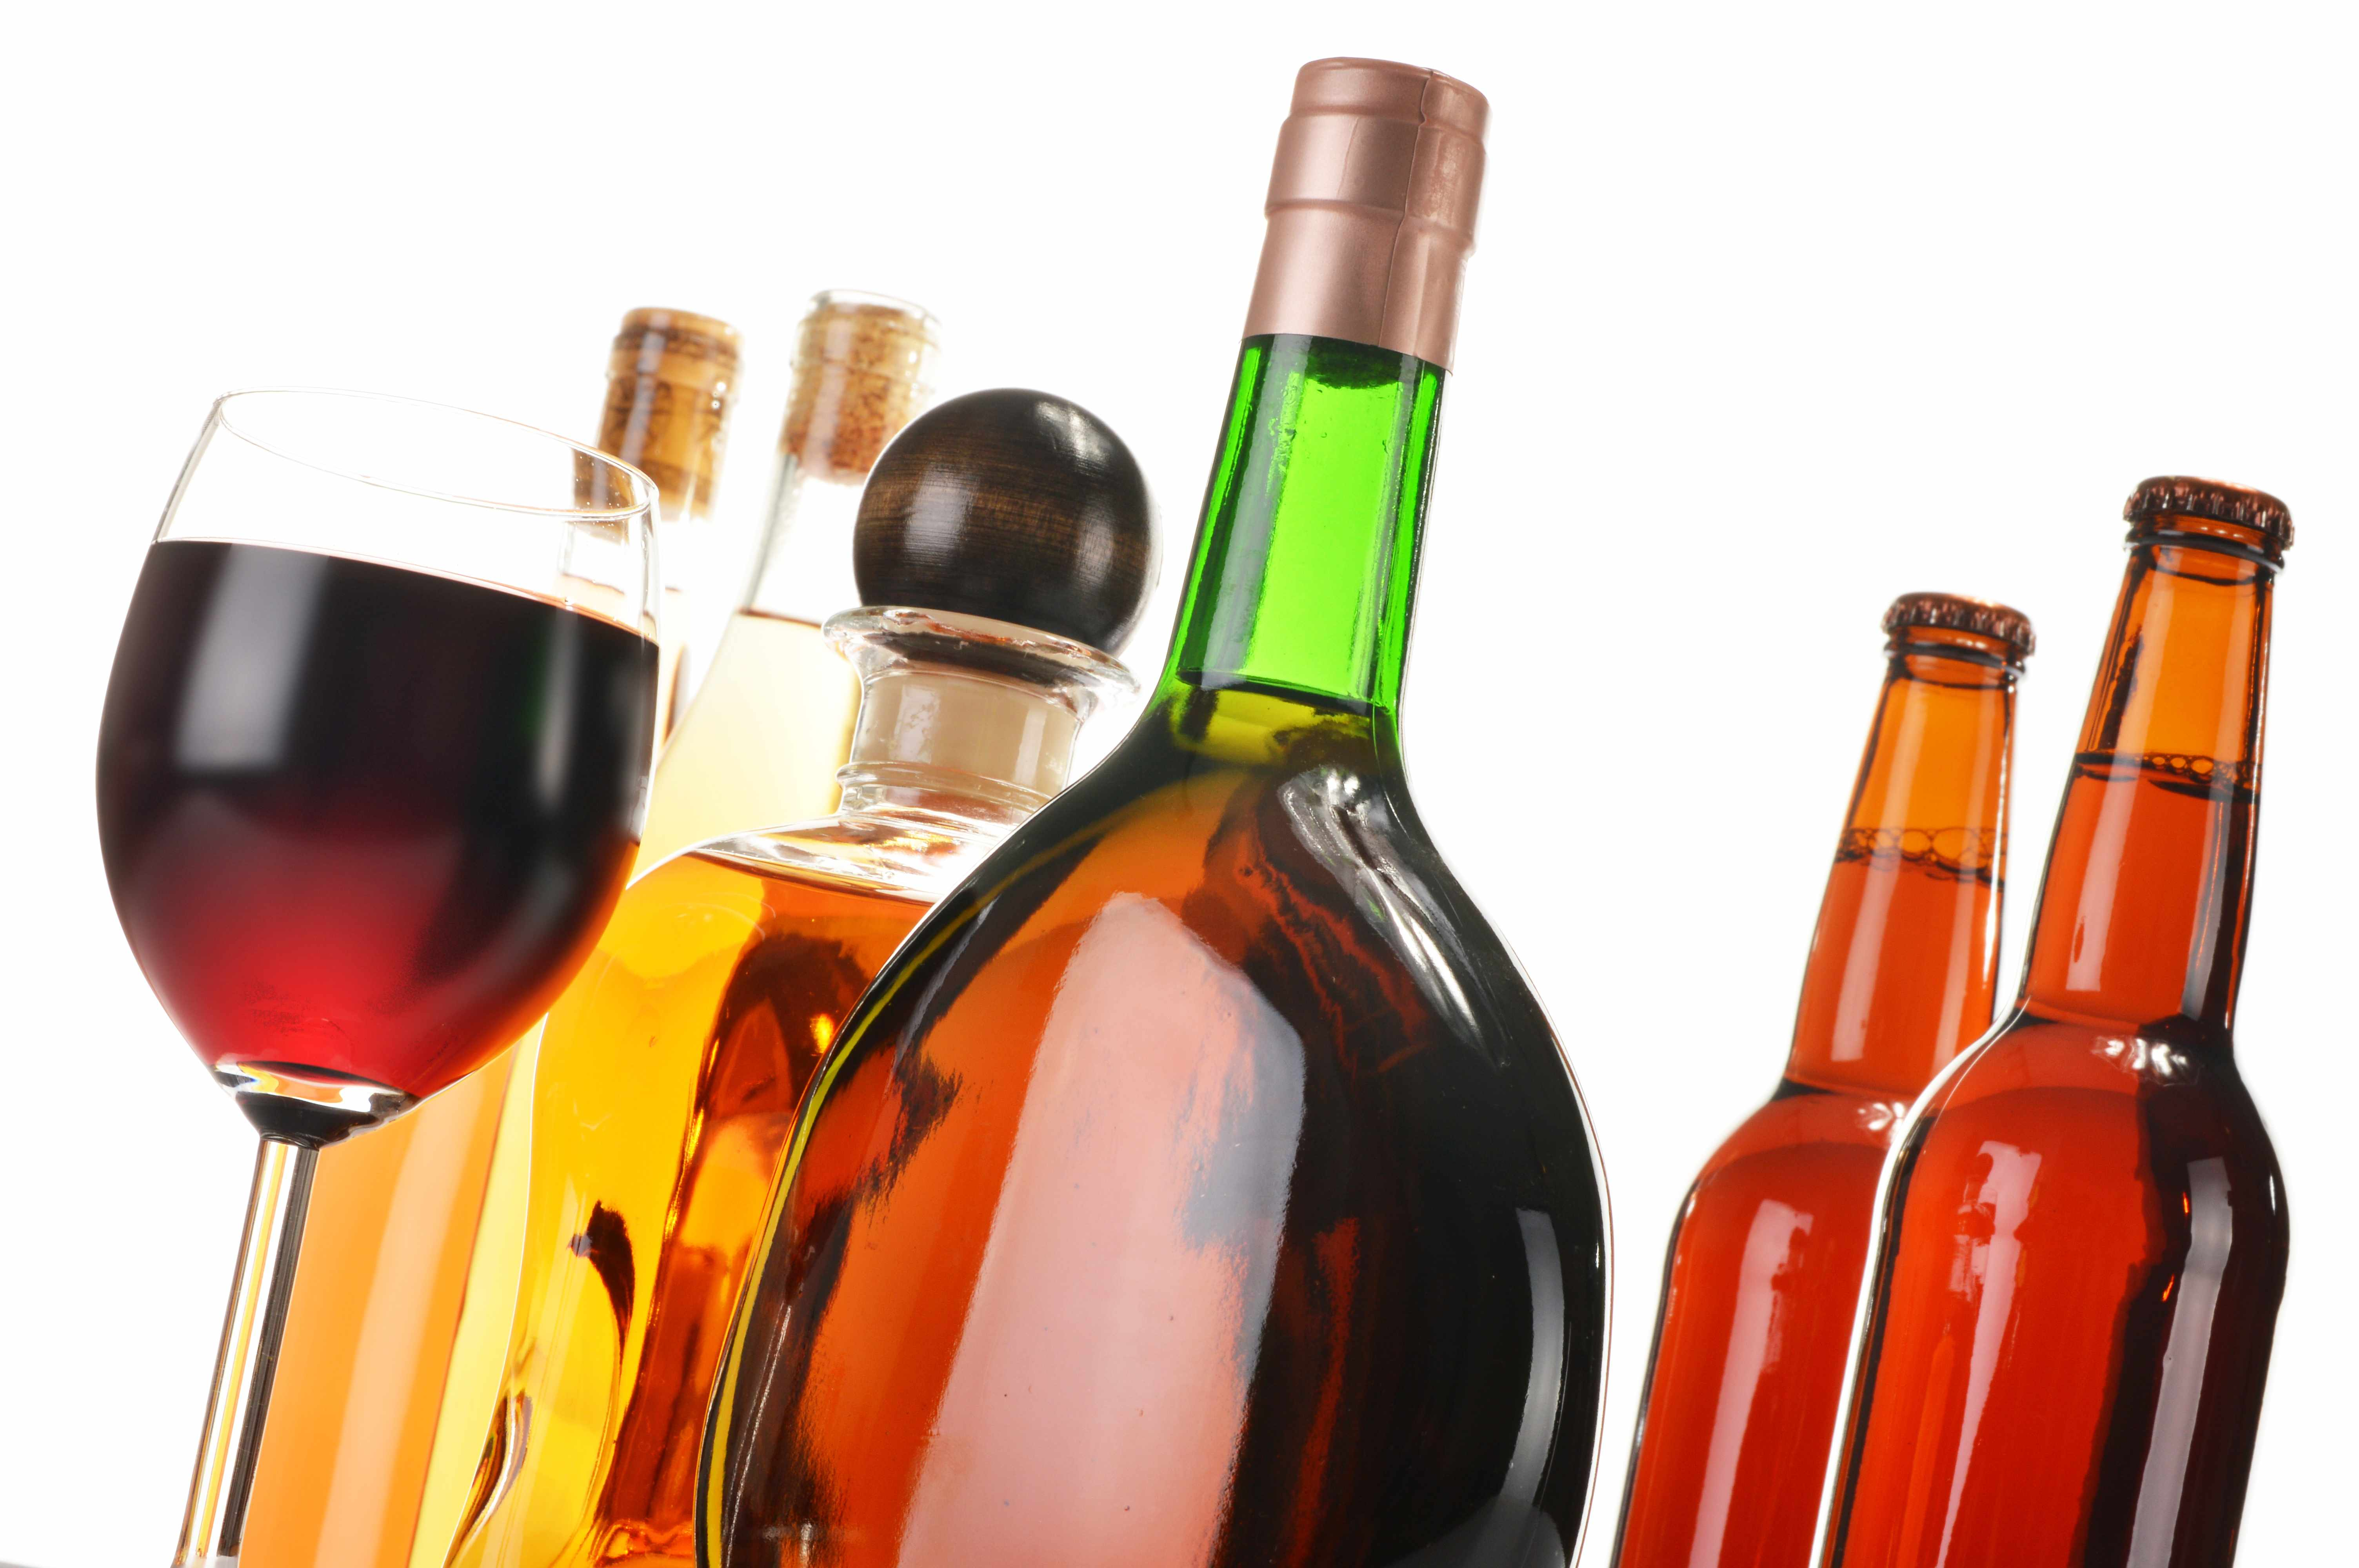 various alcoholic beverages including wine and beer